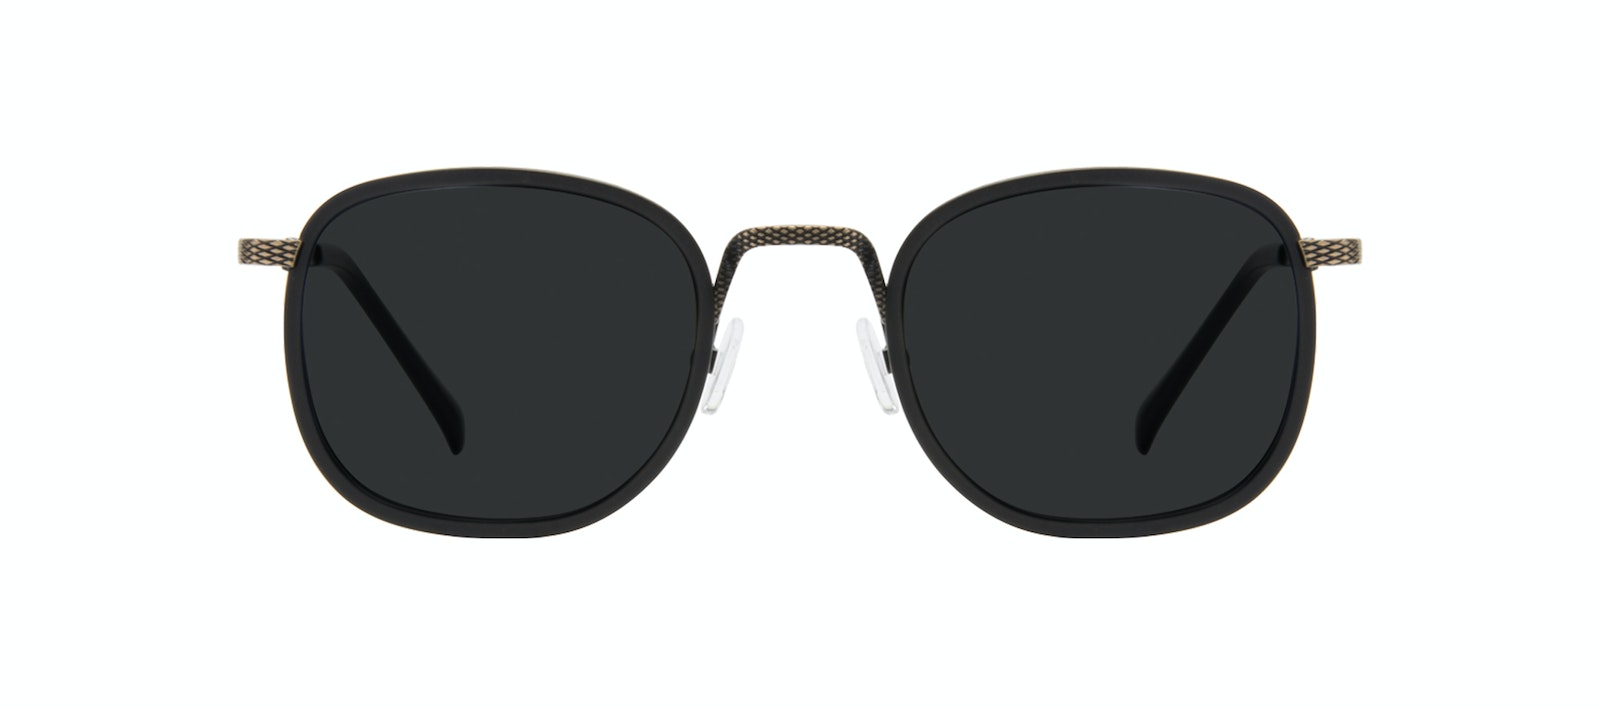 Affordable Fashion Glasses Square Sunglasses Men Swell Onyx Matte Front